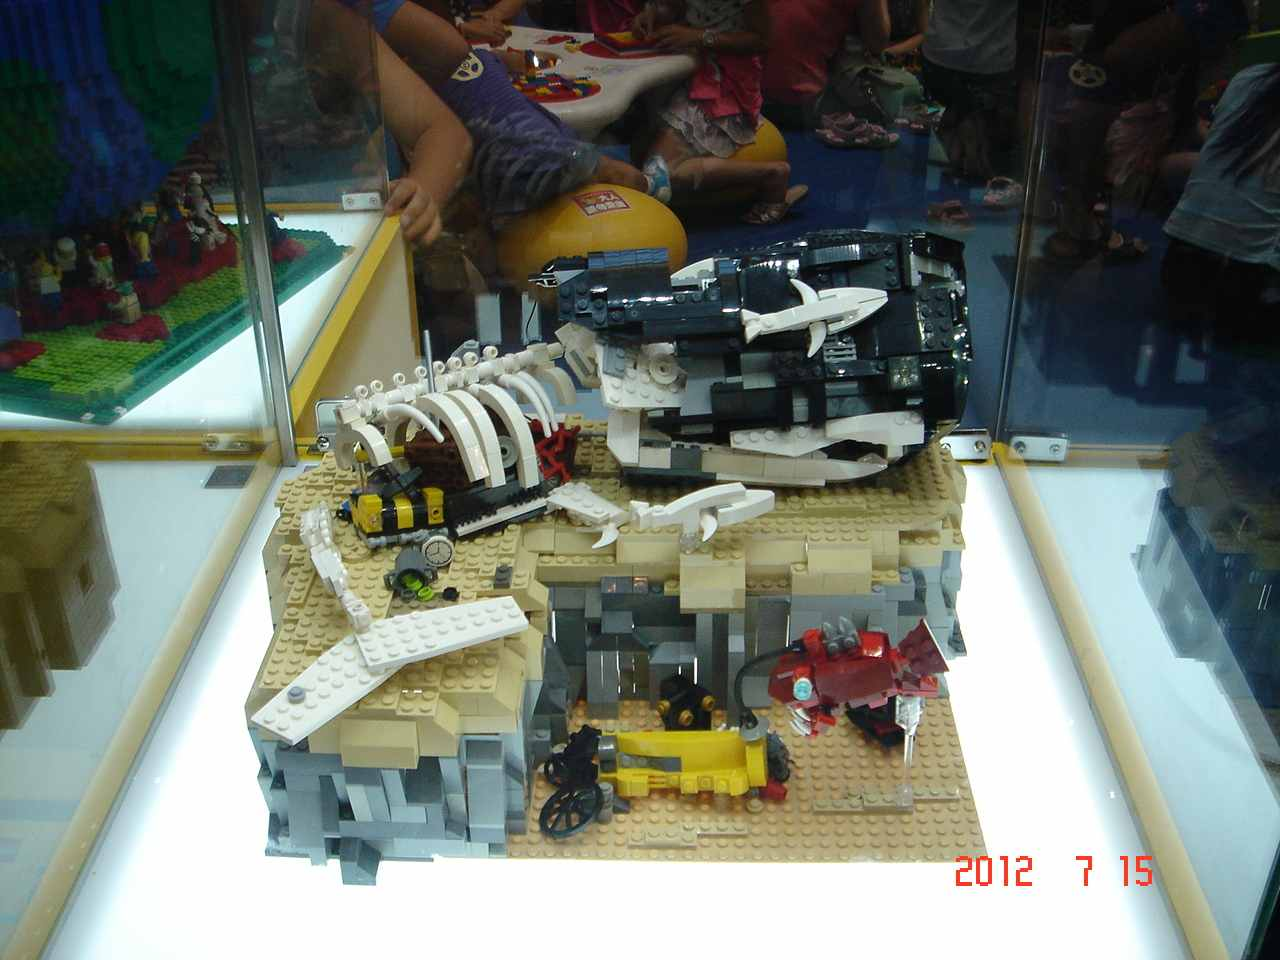 lego_show_ucc-office_0715012.jpg